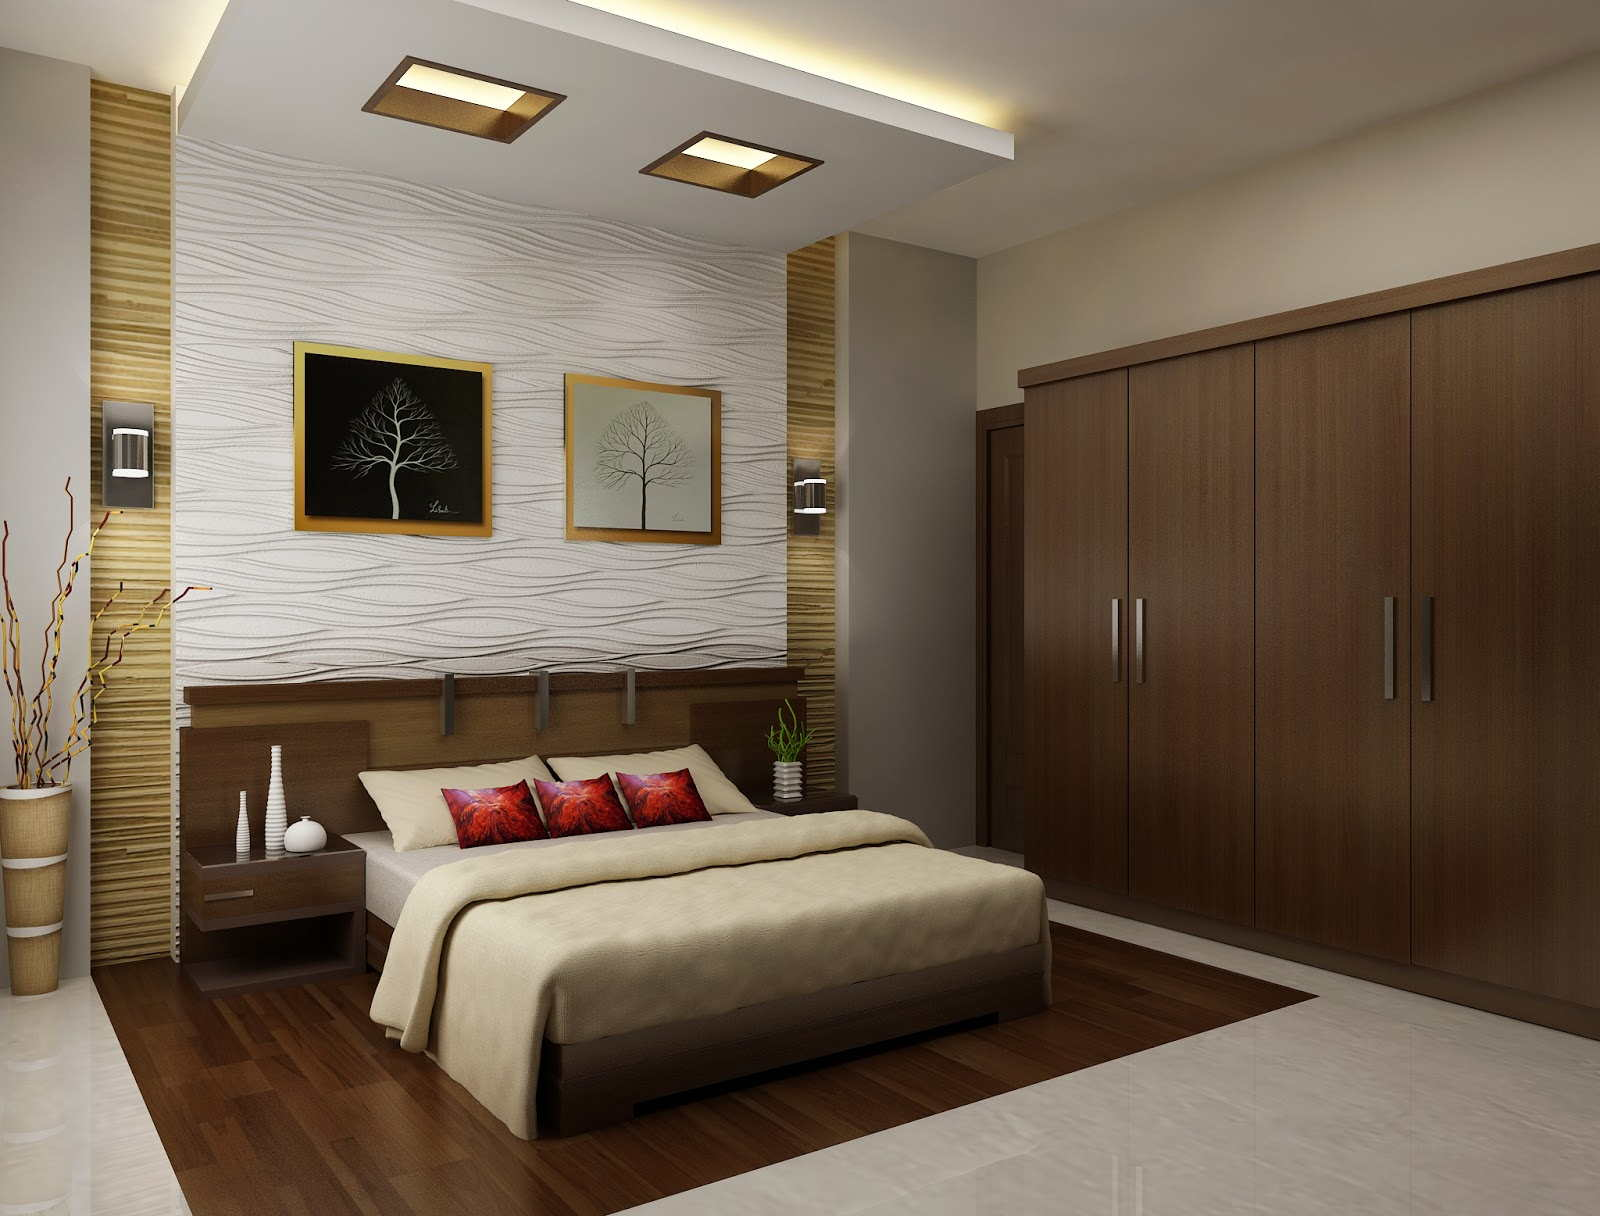 Interior Bed Room Design 11 Attractive Bedroom Design Ideas That Will Make Your